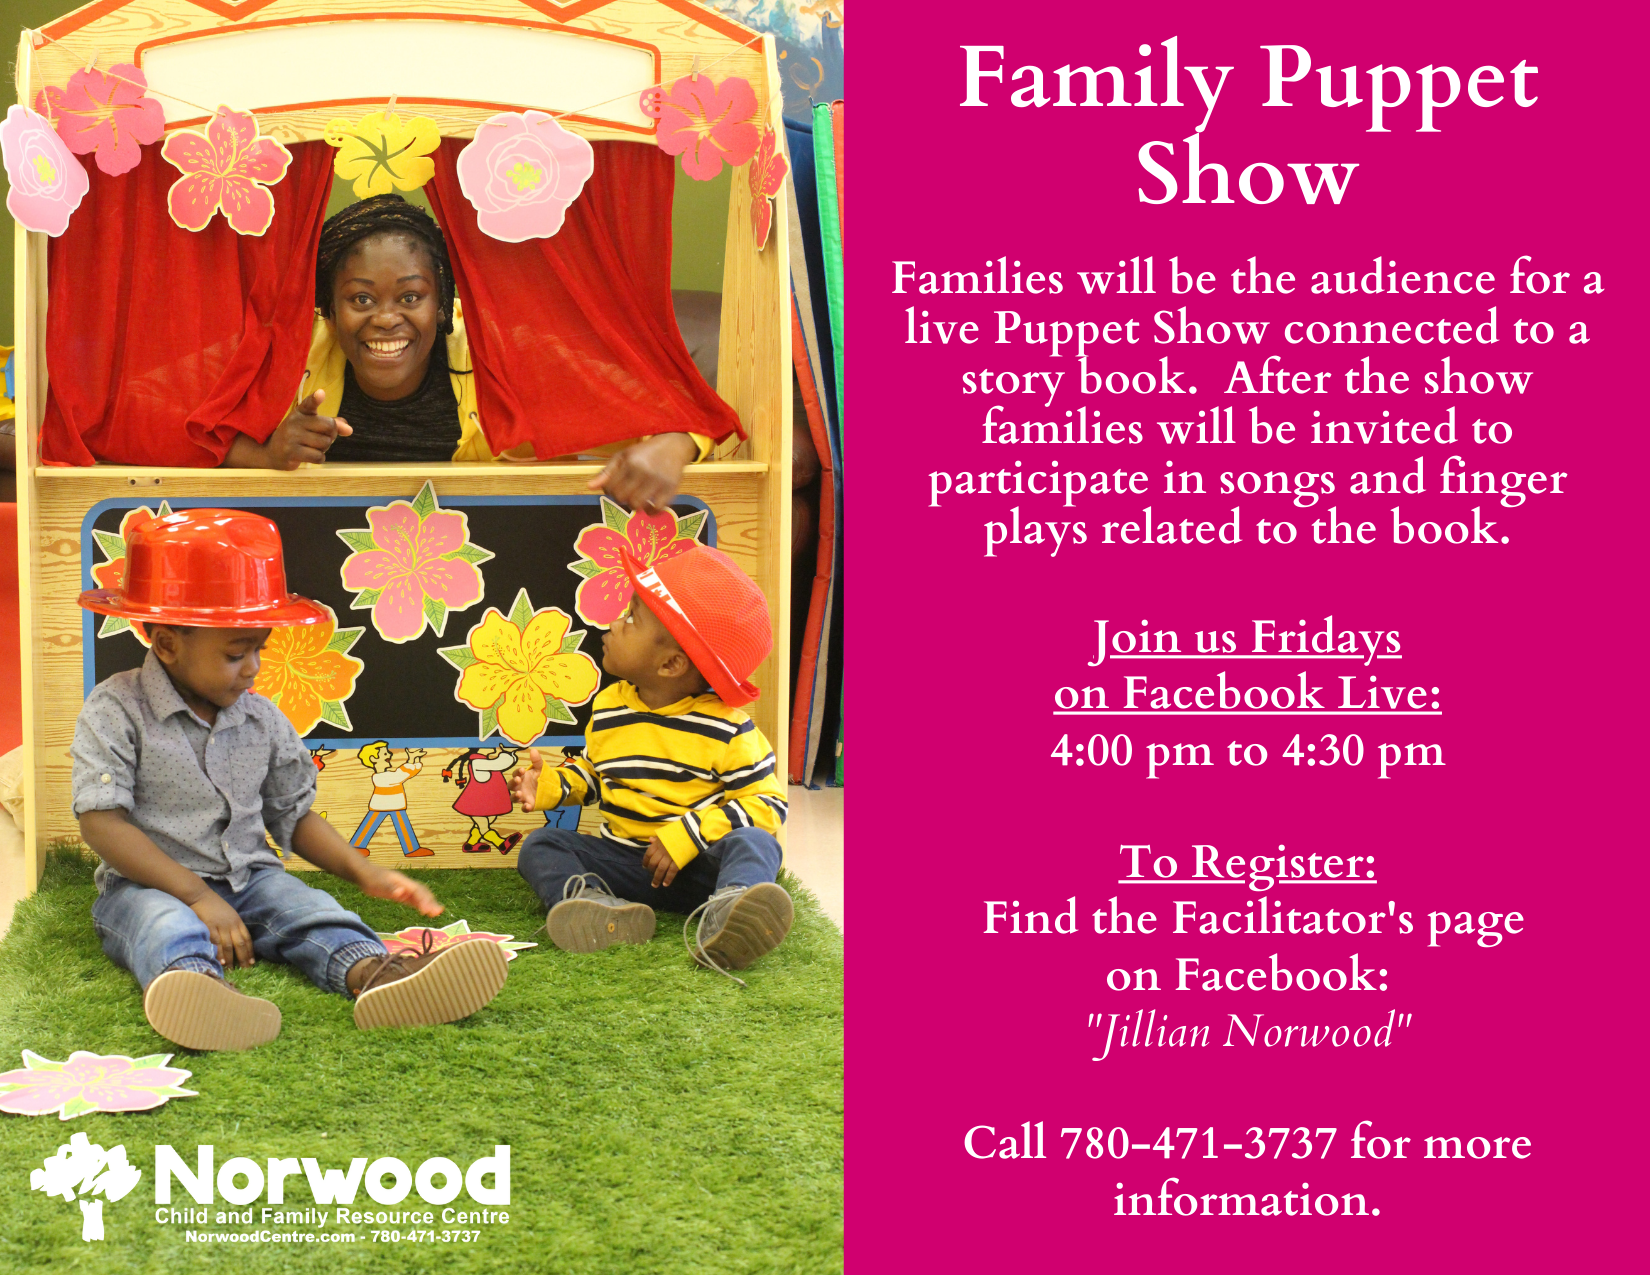 Family Puppet Show